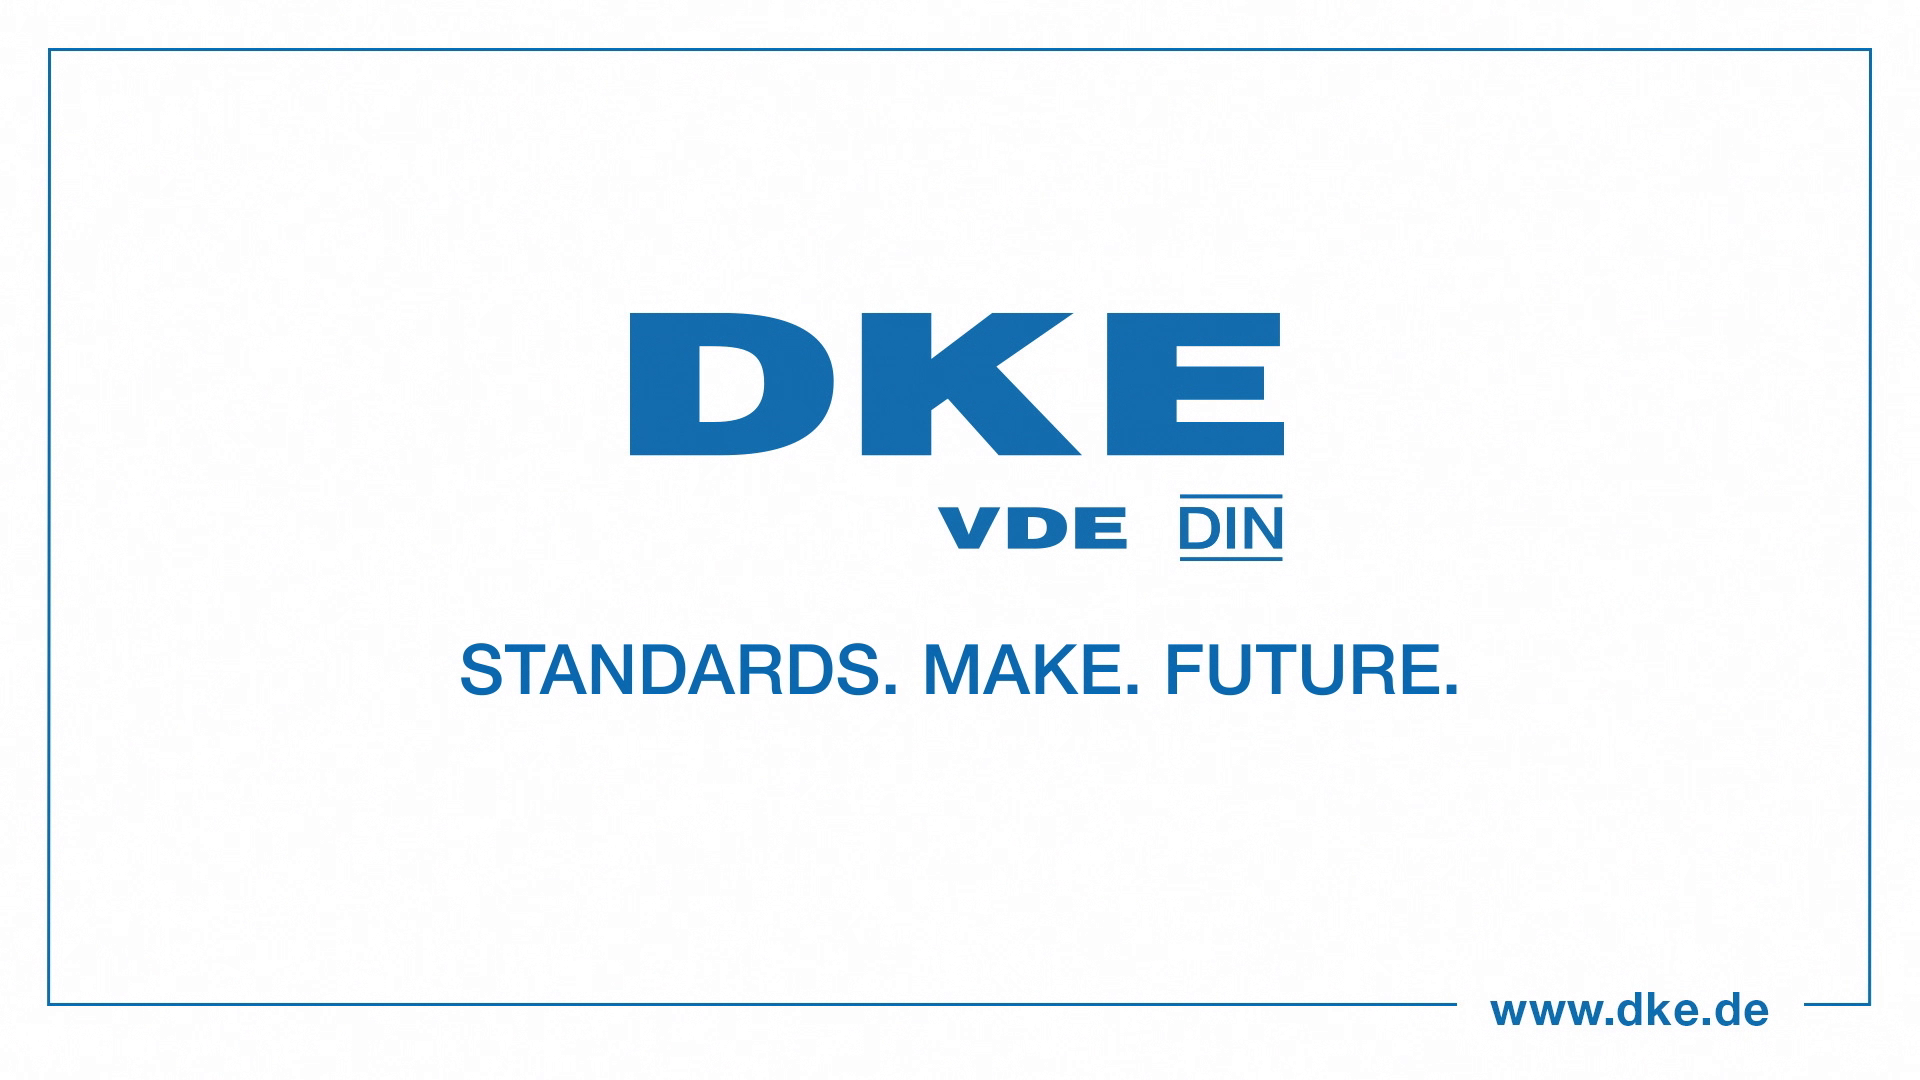 DKE – STANDARDS. MAKE. FUTURE.